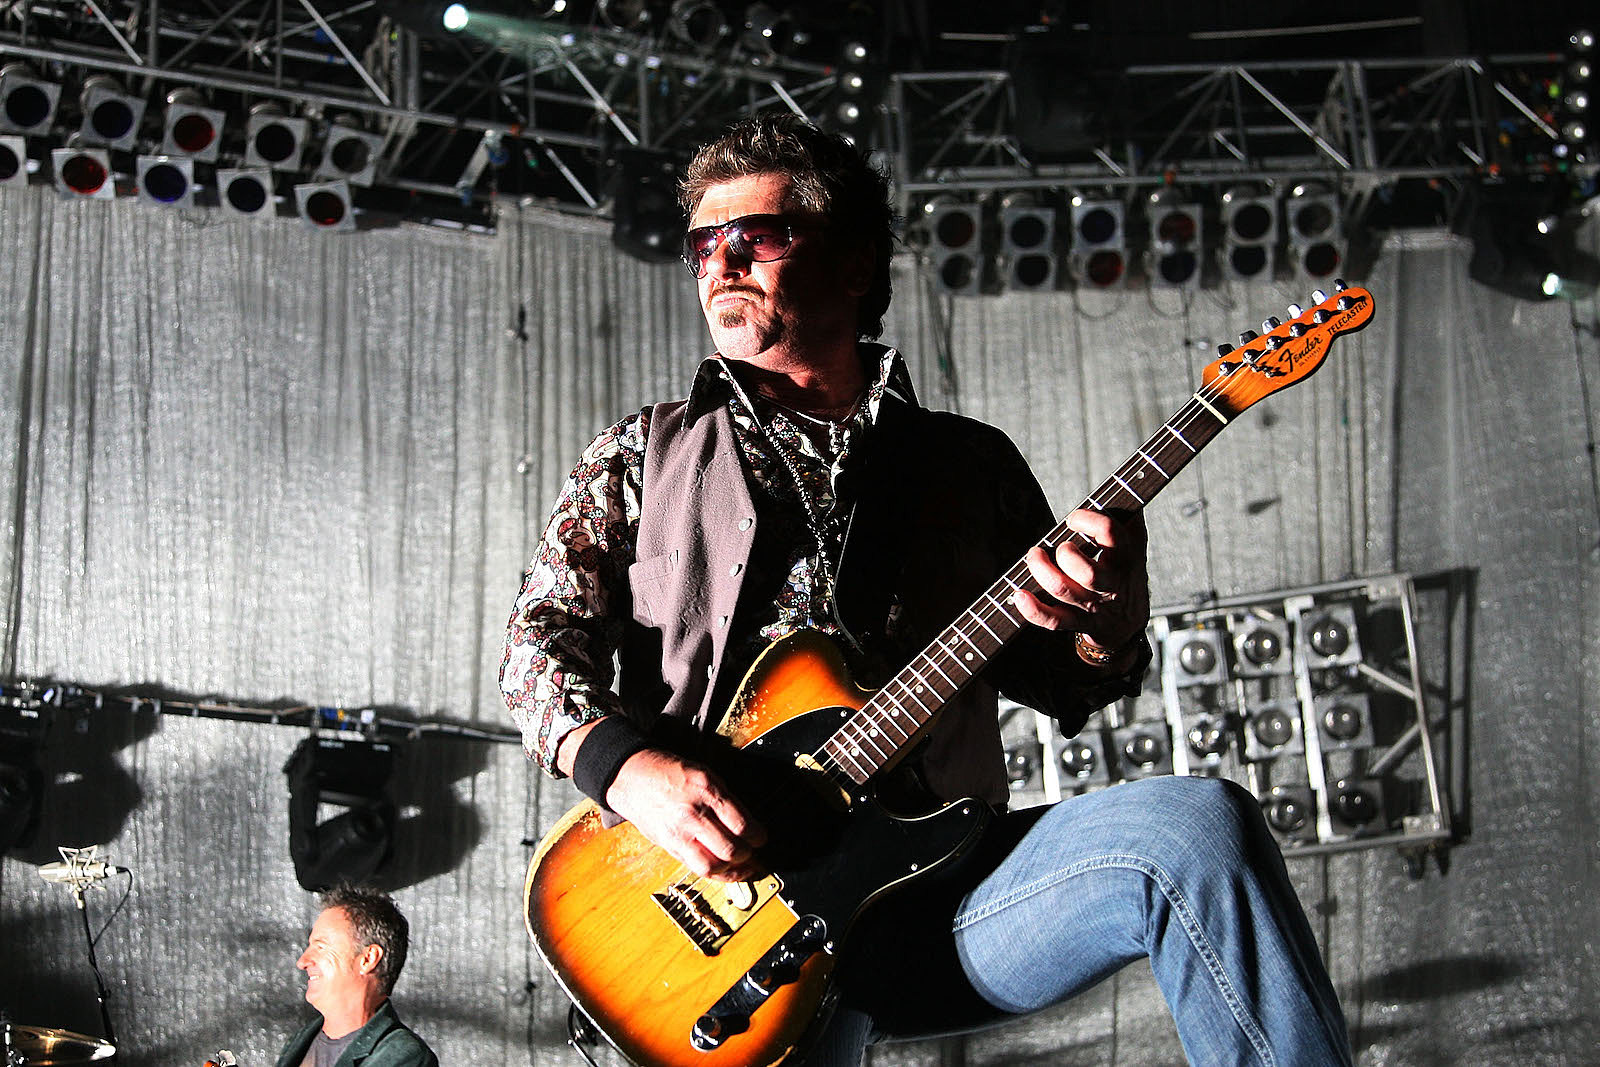 INXS Guitarist Tim Farriss Suing Boat Company Over Severed Finger